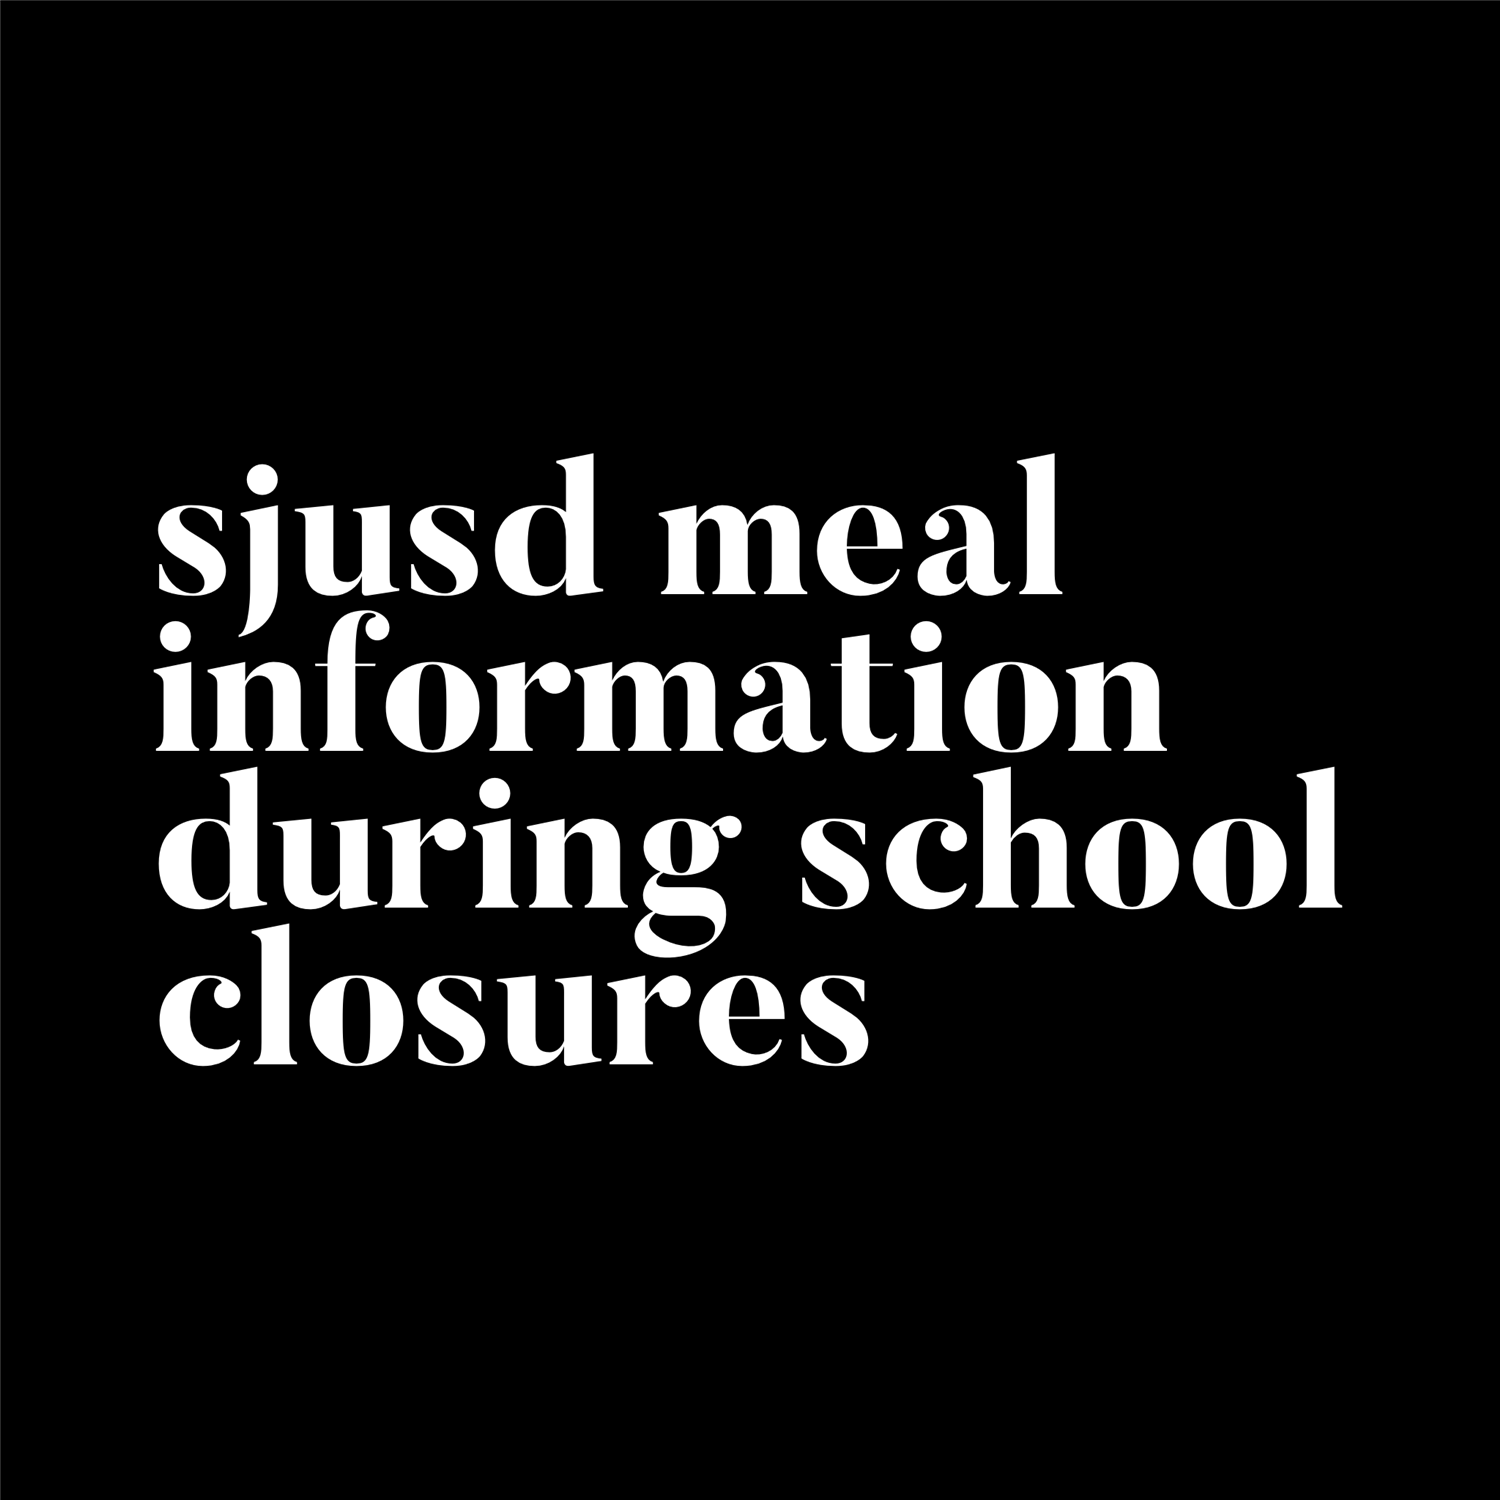 SJUSD Meal Services During School Closures